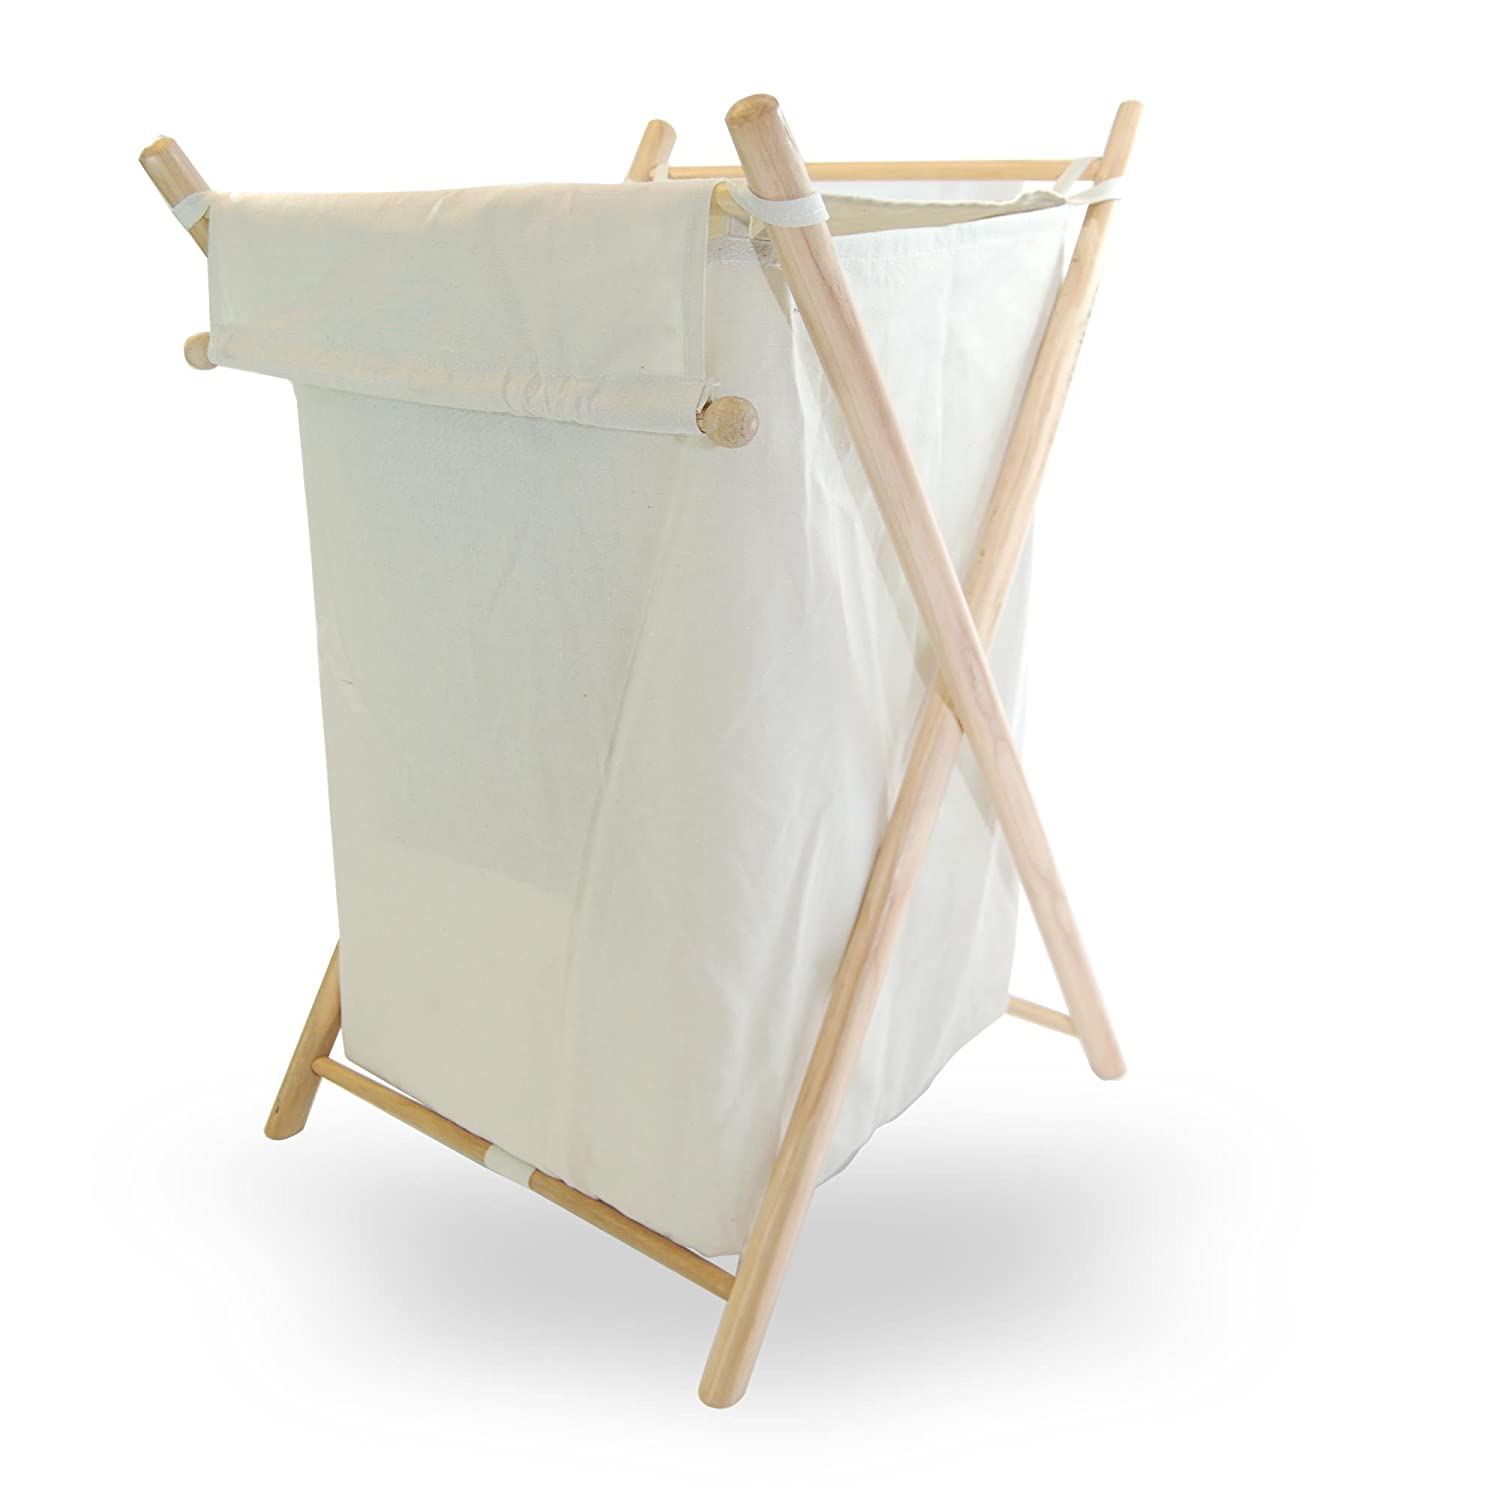 Canvas laundry basket uk metal folding canvas laundry bag do you need four sections for your - Whites and darks laundry basket ...